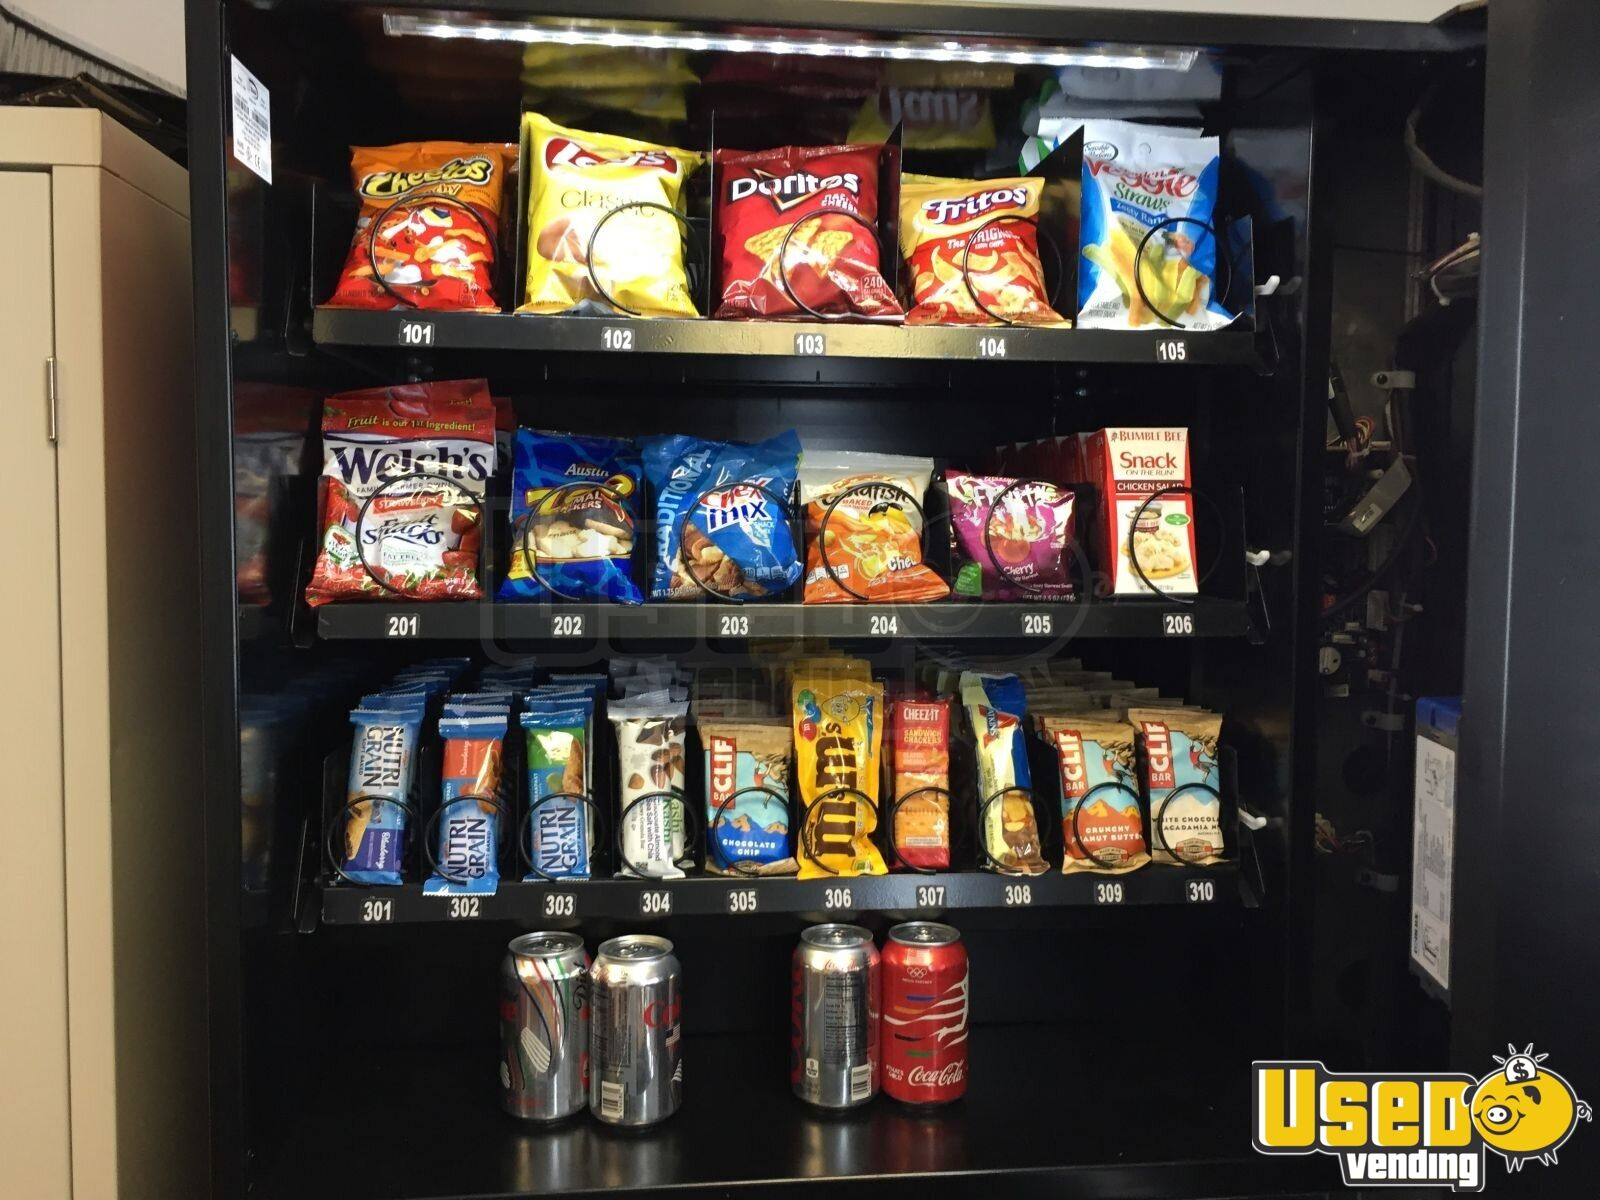 2015 N2g4000 Healthy Vending Machines Naturals 2 Go Vending Combo 6 Illinois for Sale - 6